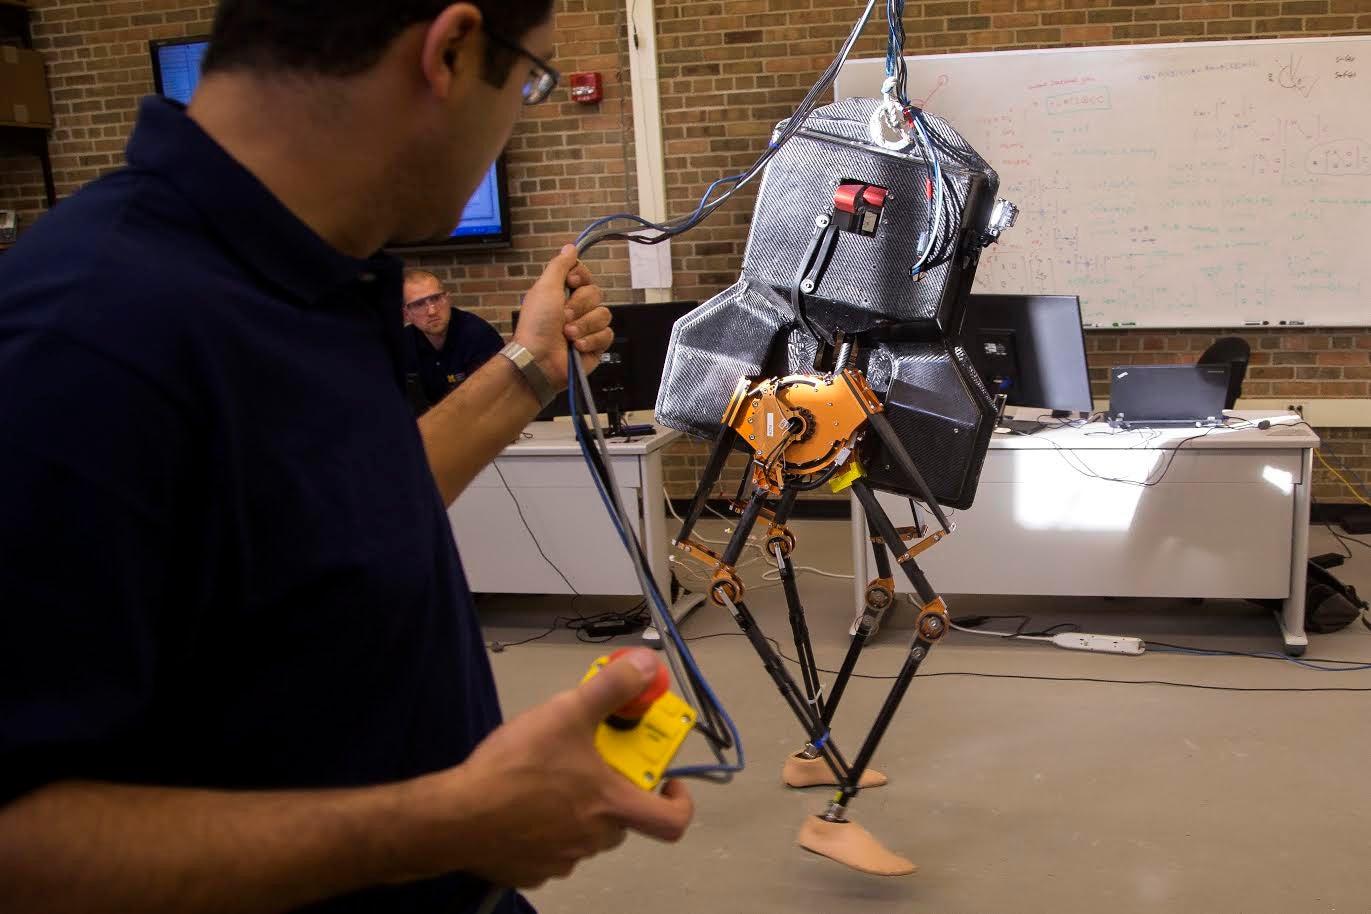 Two-Legged Robot With Human Feet Can Now Walk Independently